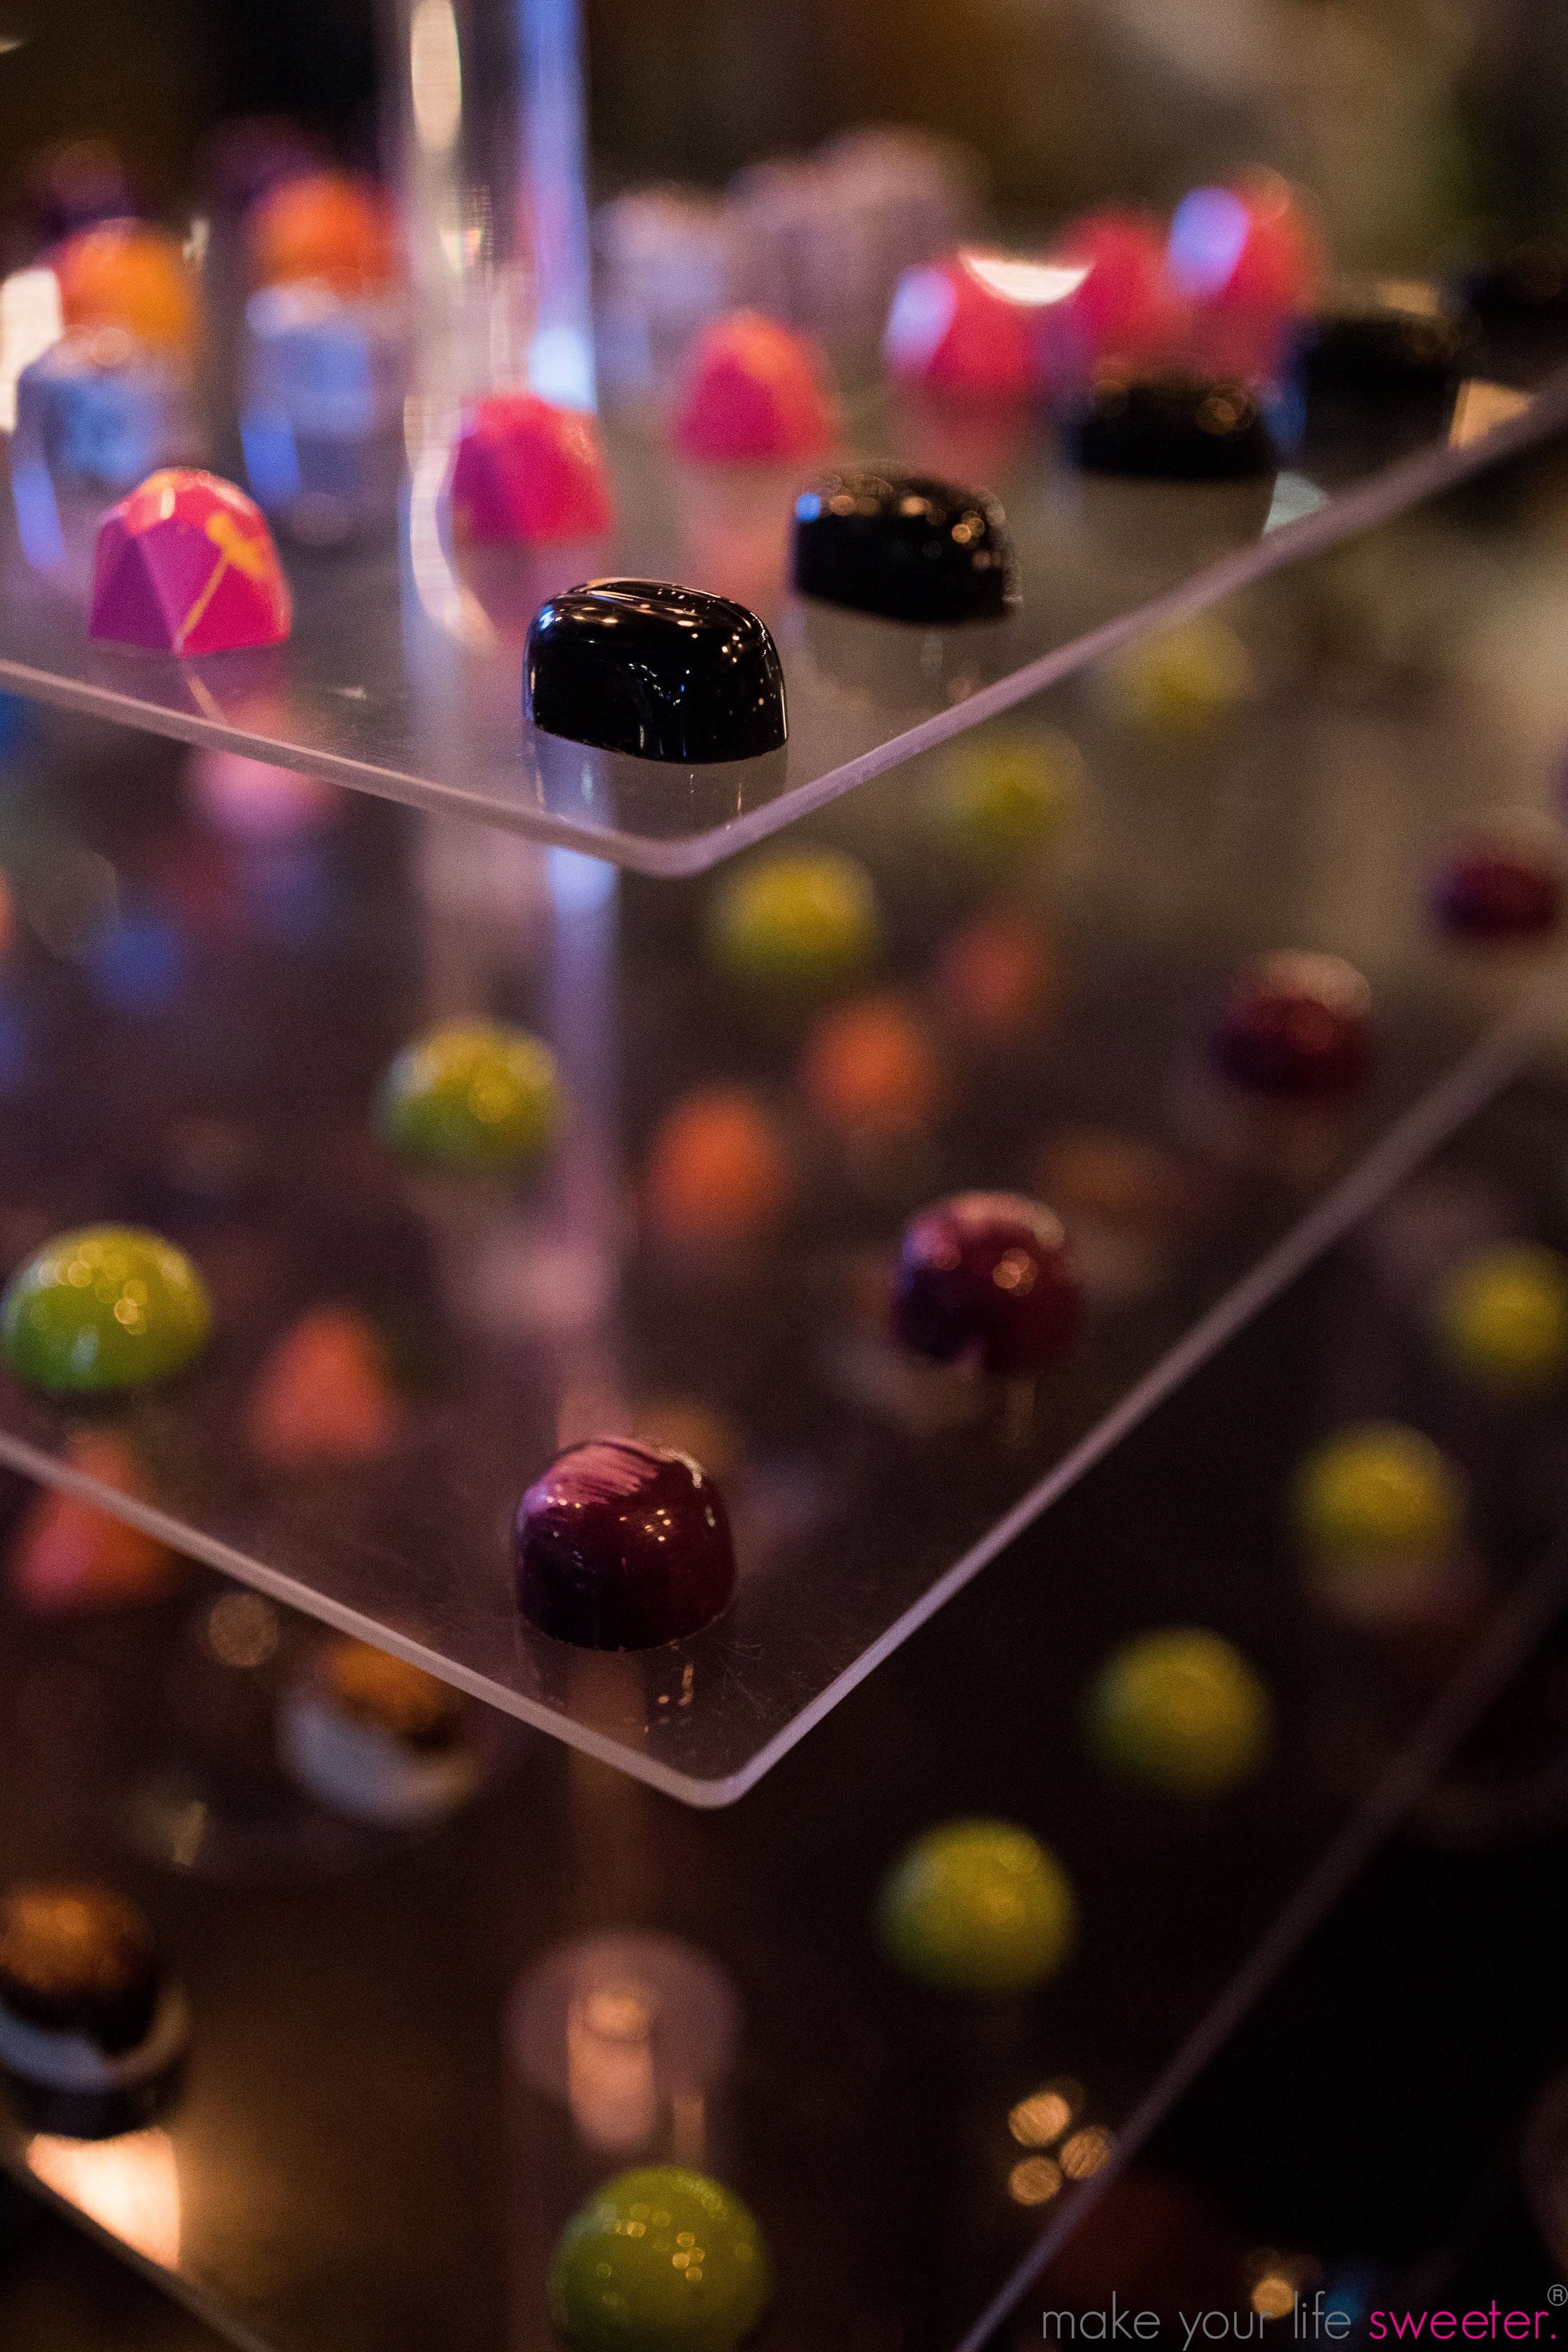 Make Your Life Sweeter Events - YPO Dine Around: ModSweets Artisanal Chocolate Tasting Bar